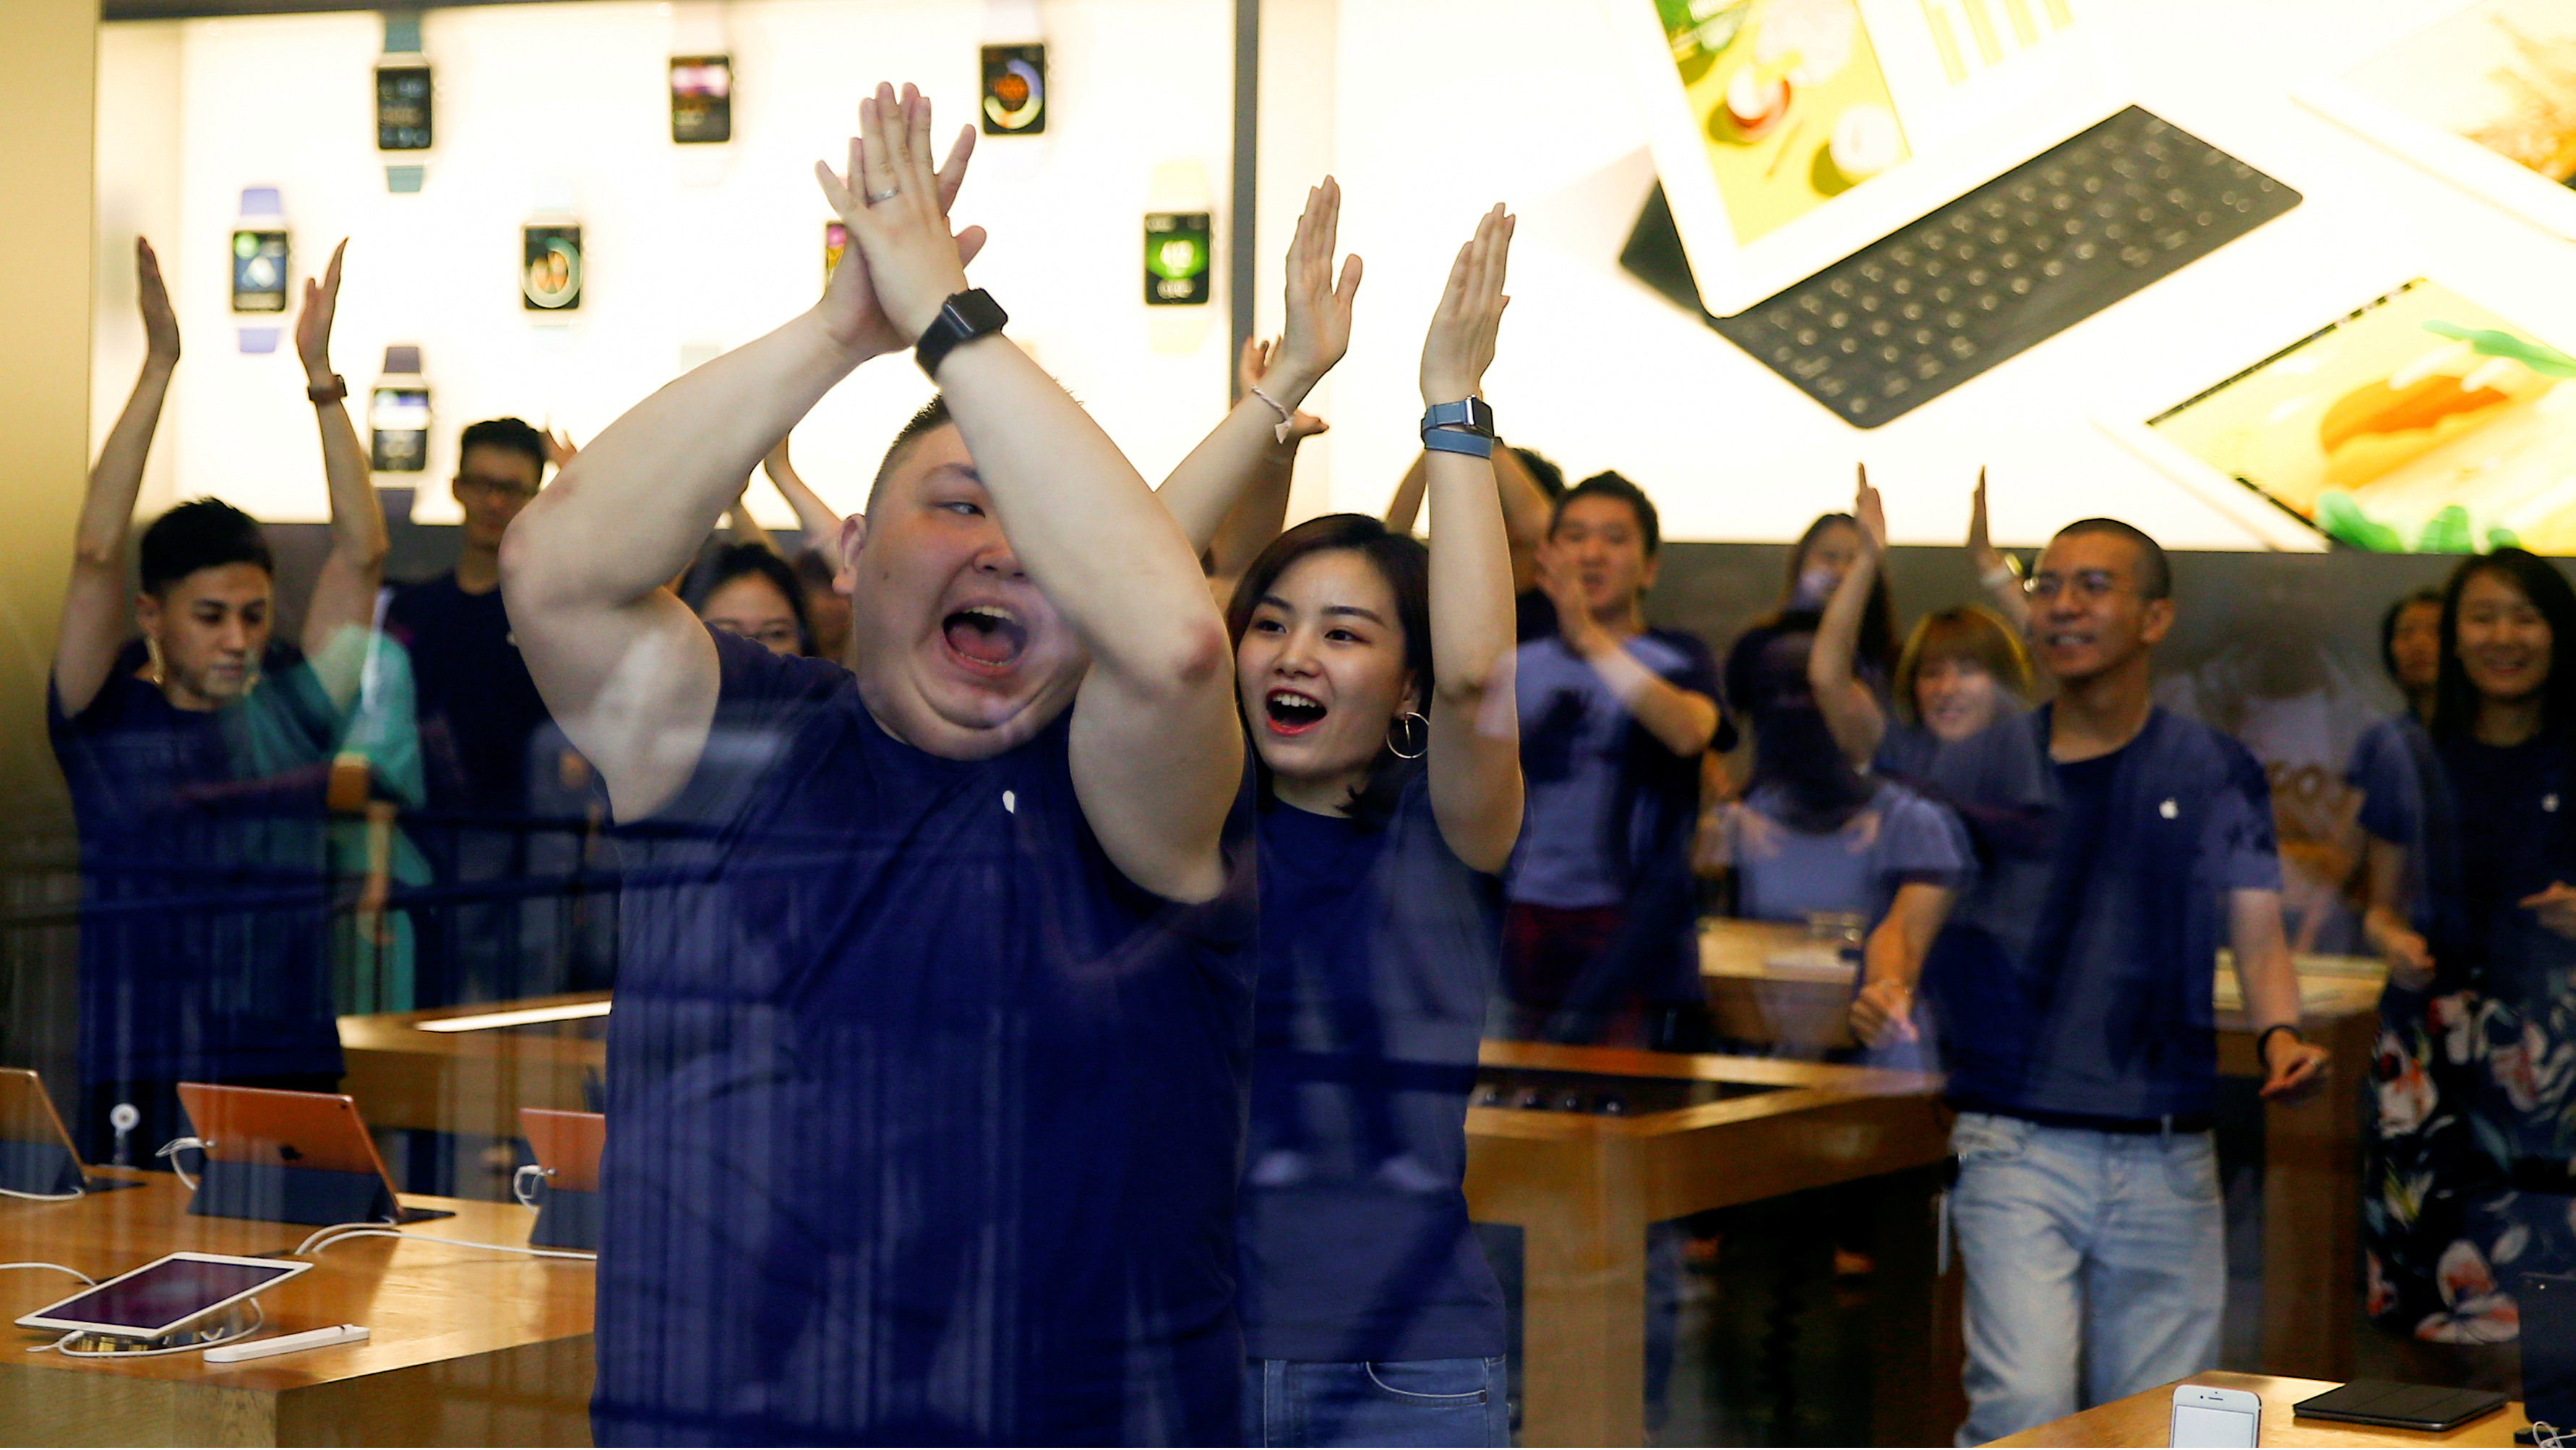 Staff members perform a dance routine before opening an Apple store to customers who line up to purchase the new iPhone 7 in Beijing, China, September 16, 2016.